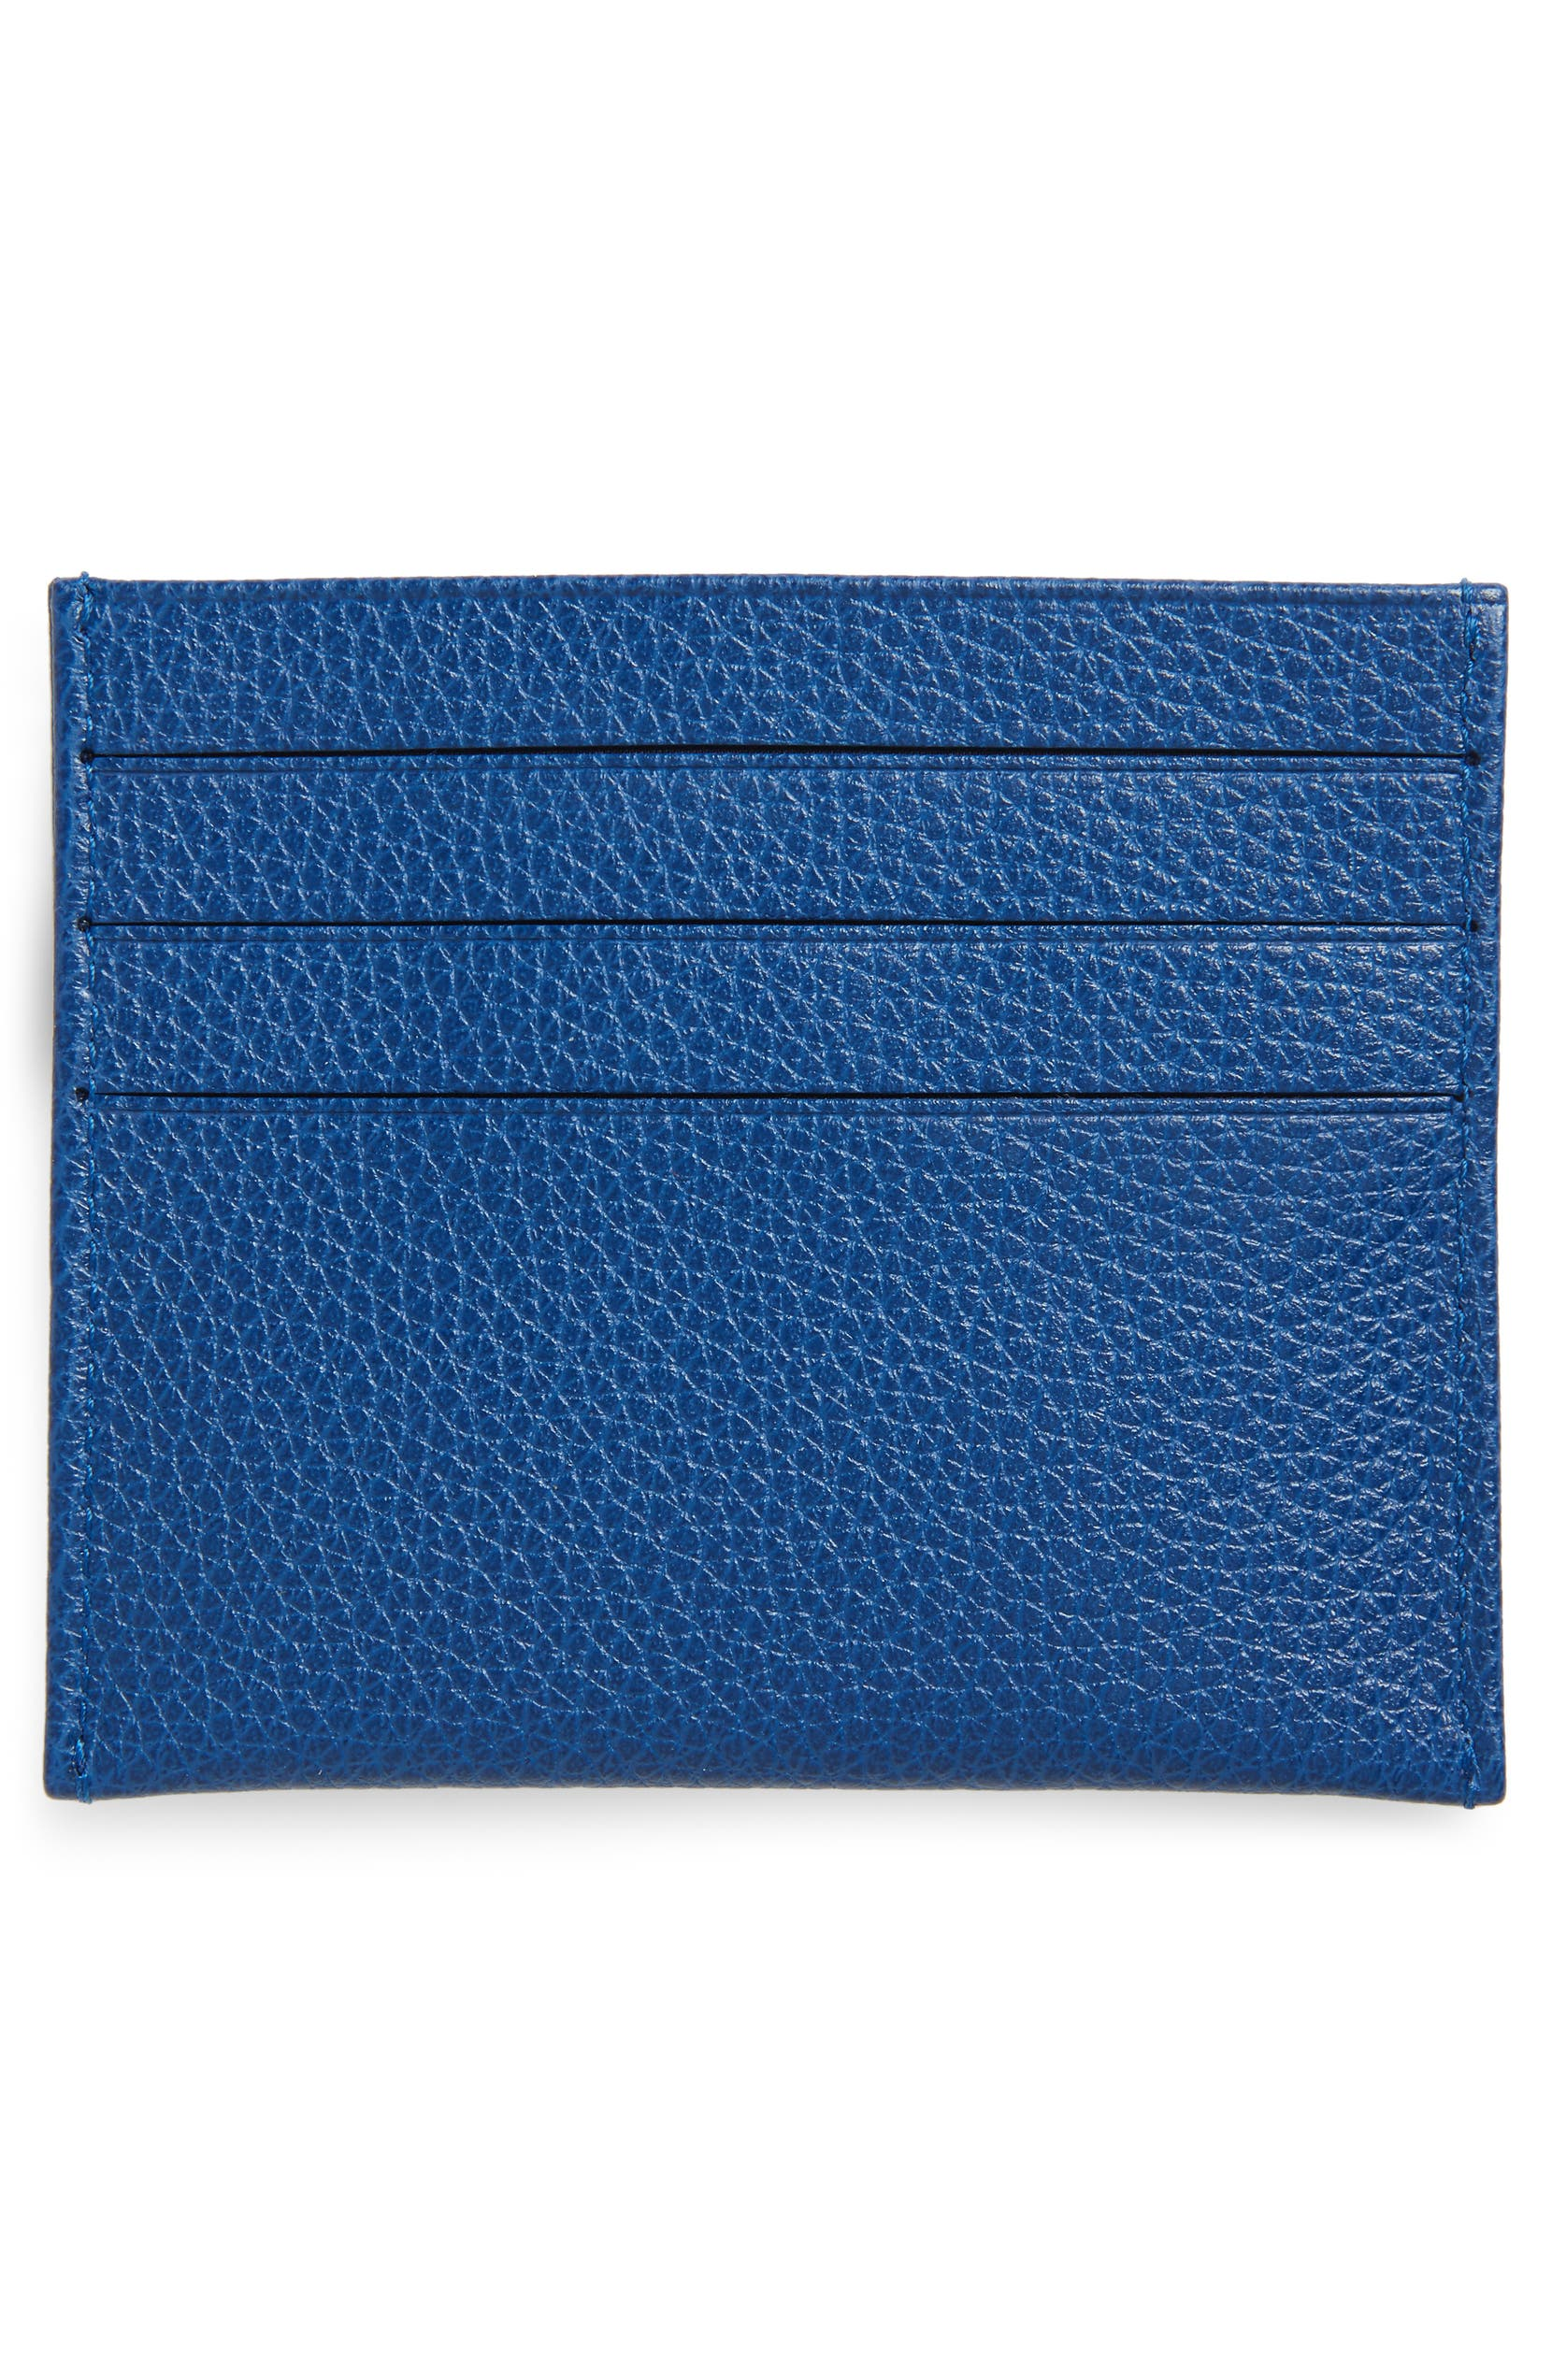 72fa28c0246 Longchamp 'Le Foulonne' Pebbled Leather Card Holder | Nordstrom